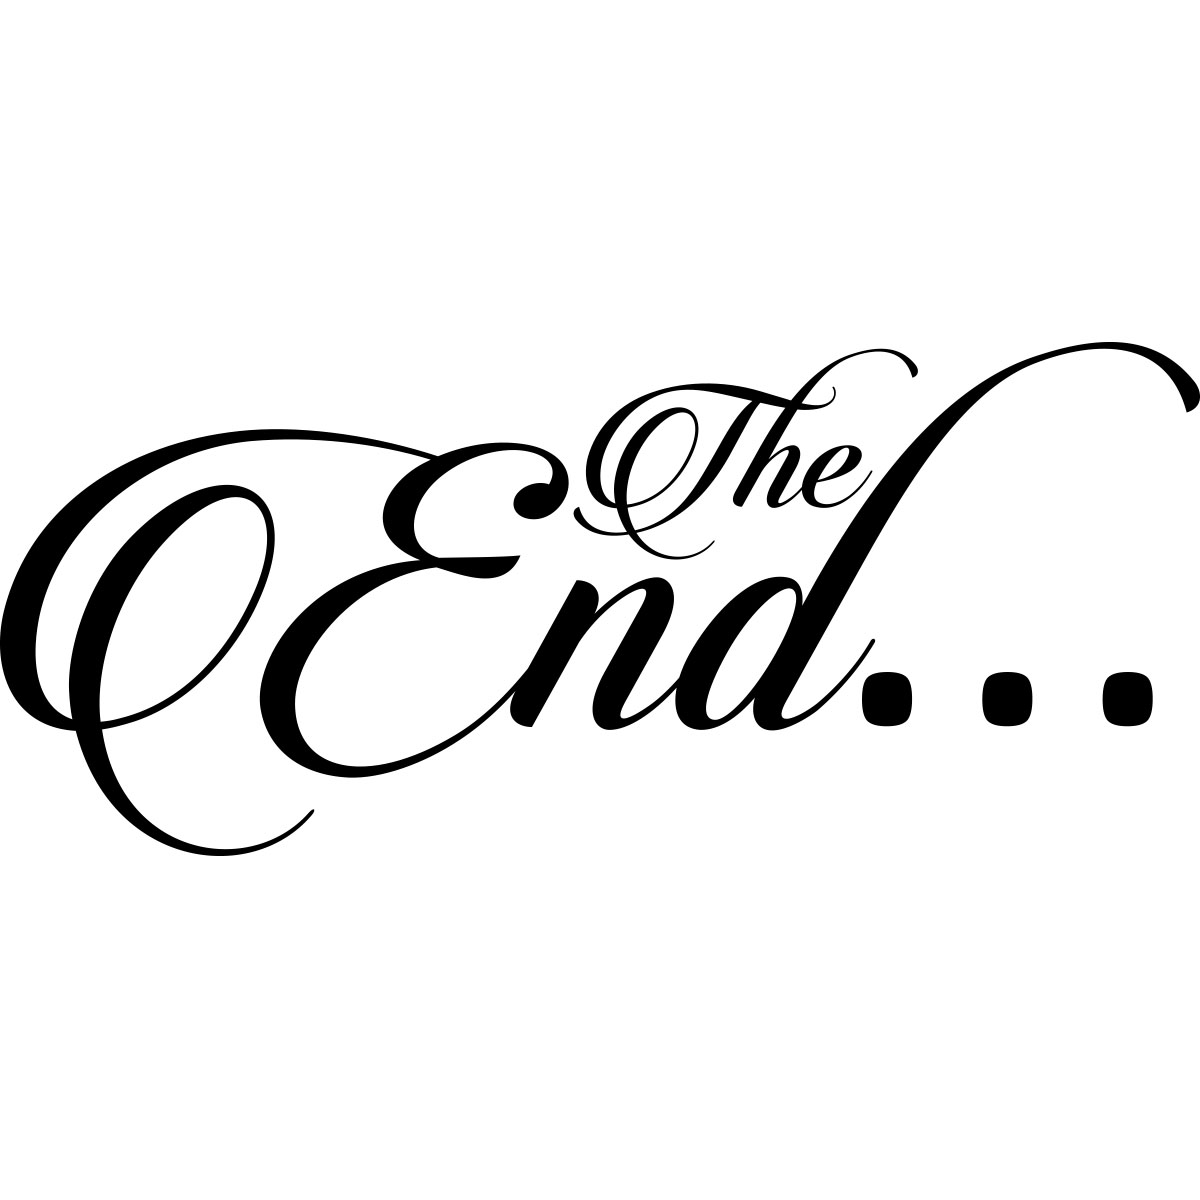 Sticker Design The End